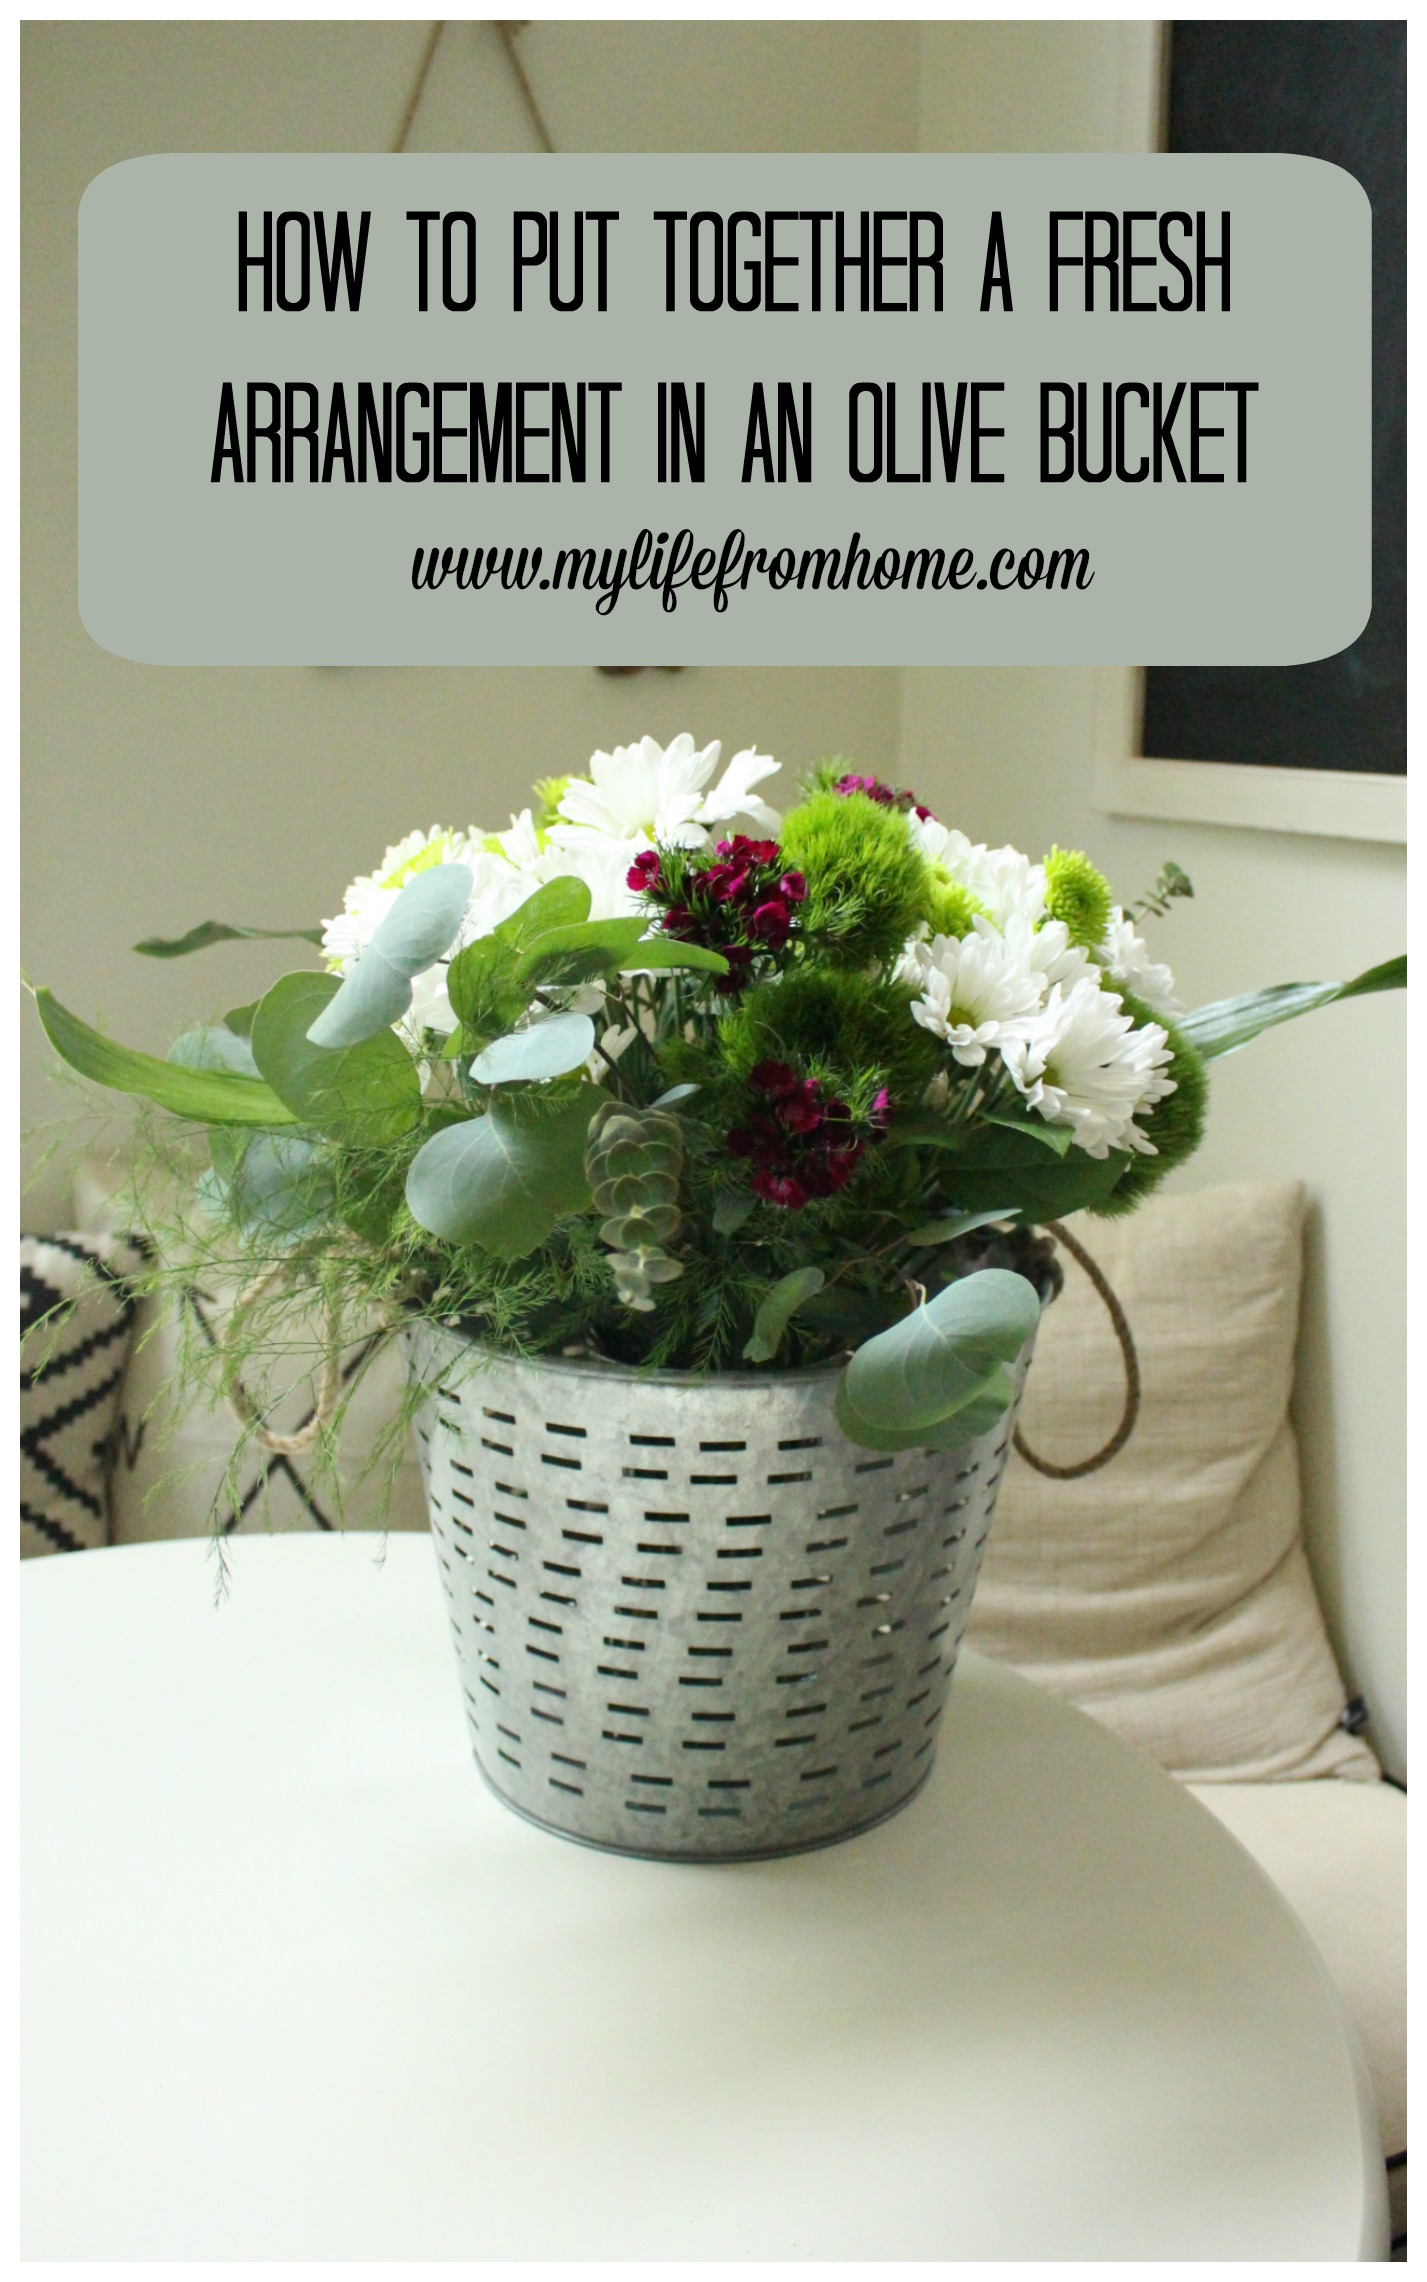 How to put together a fresh arrangement in an olive bucket by www.mylifefromhome.com